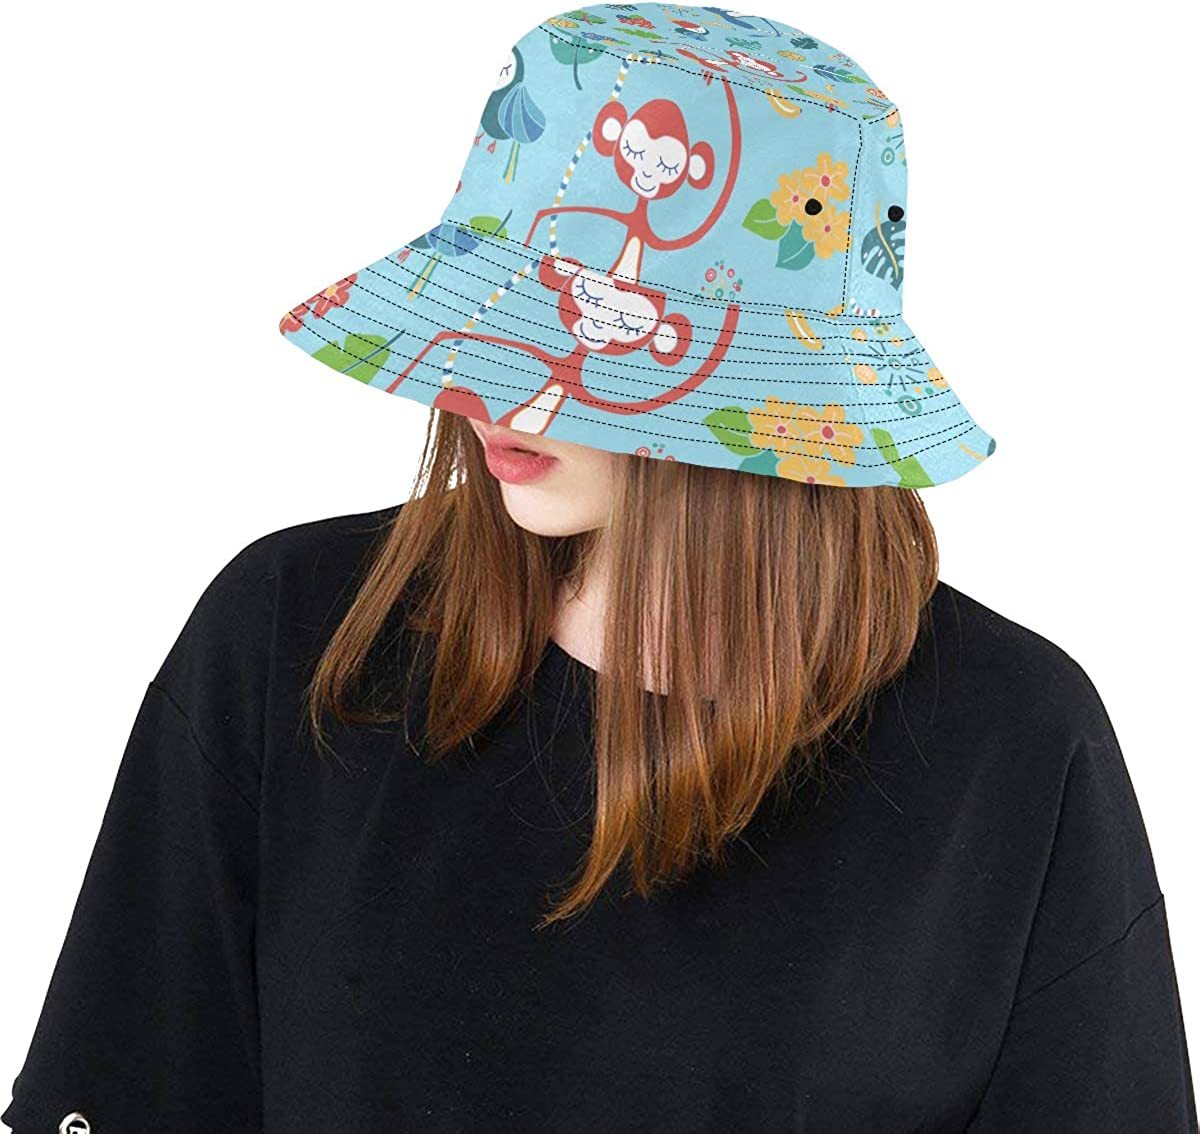 Monkey Cute Funny Forest Animals Summer Unisex Fishing Sun Top Bucket Hats for Kid Teens Women and Men with Packable Fisherman Cap for Outdoor Baseball Sport Picnic